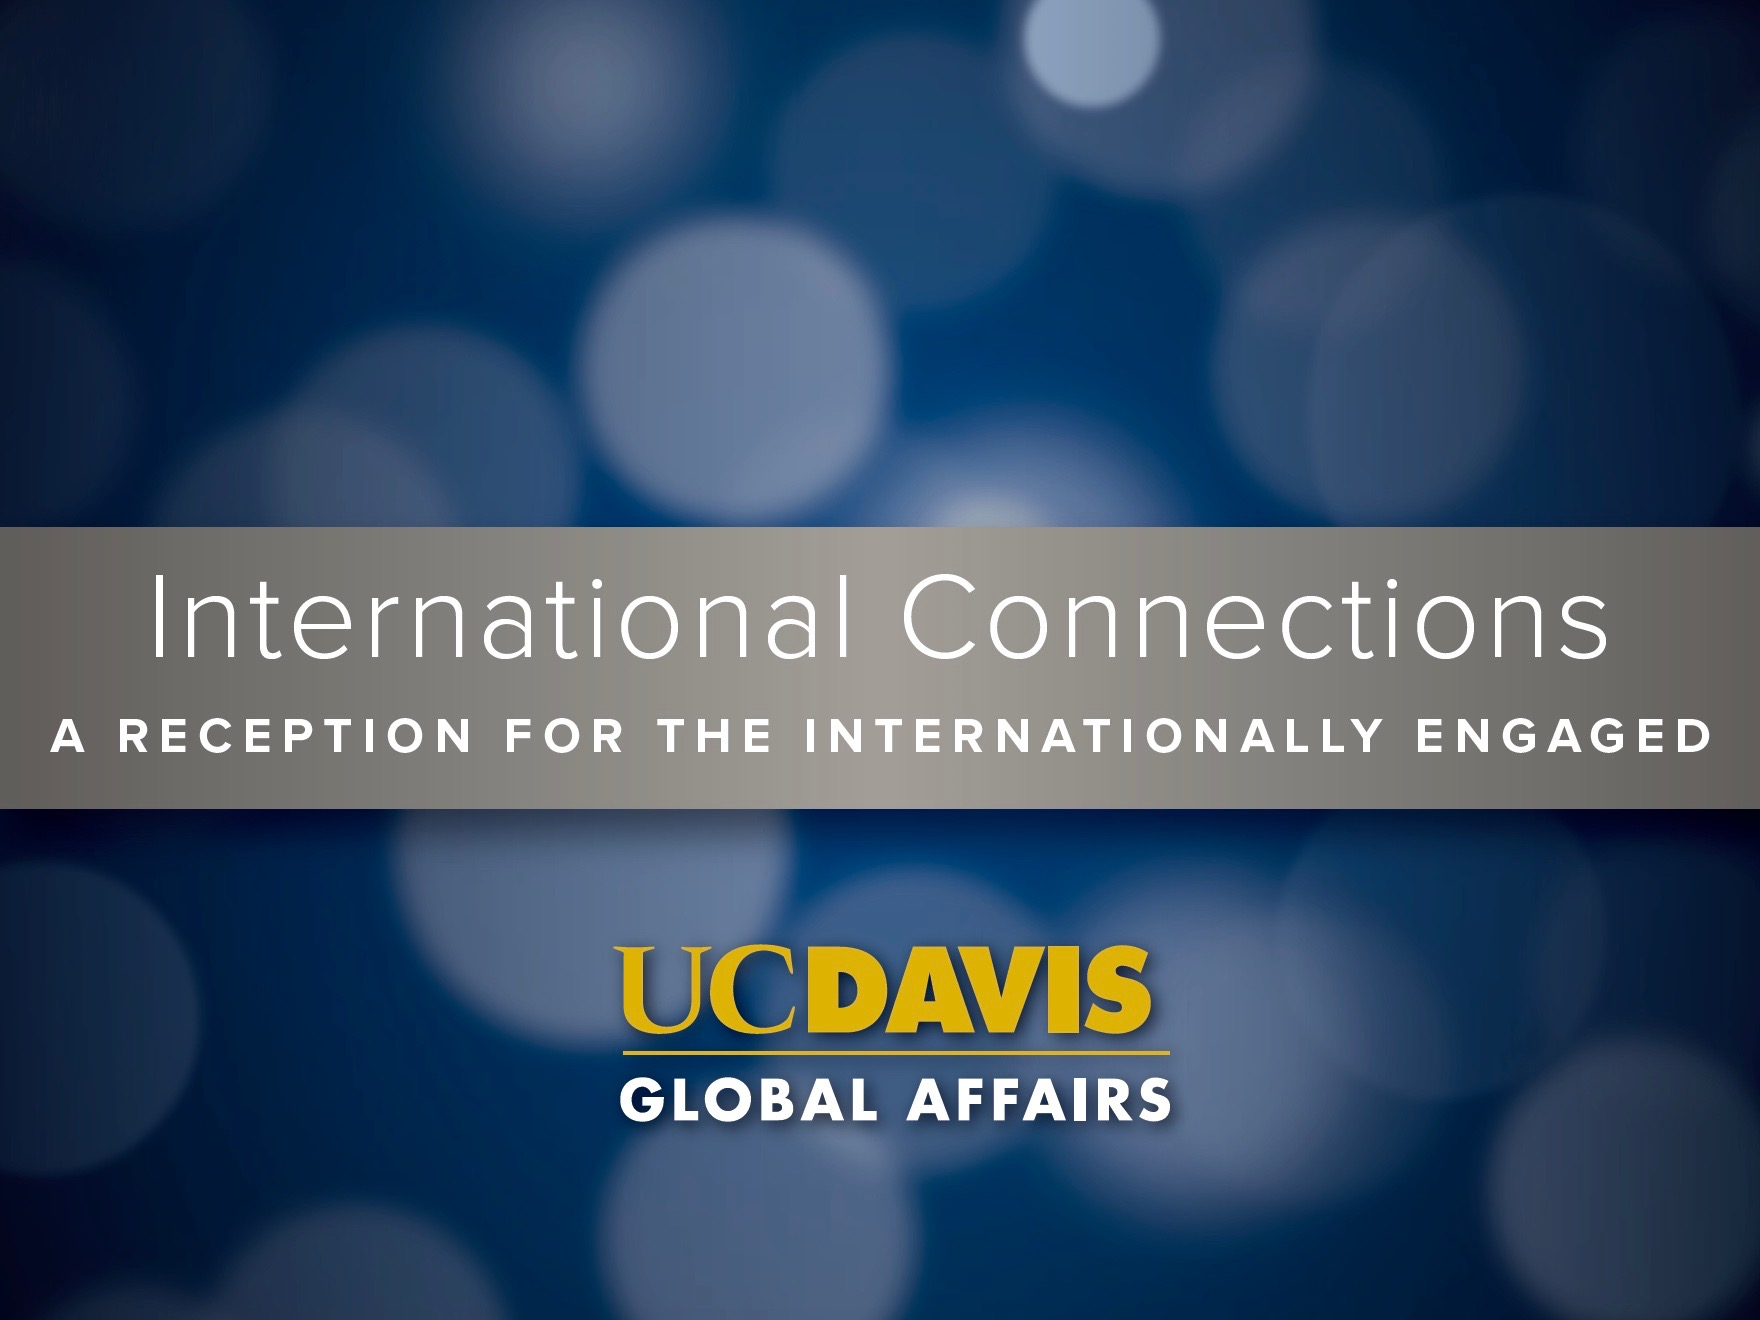 international-connections-image